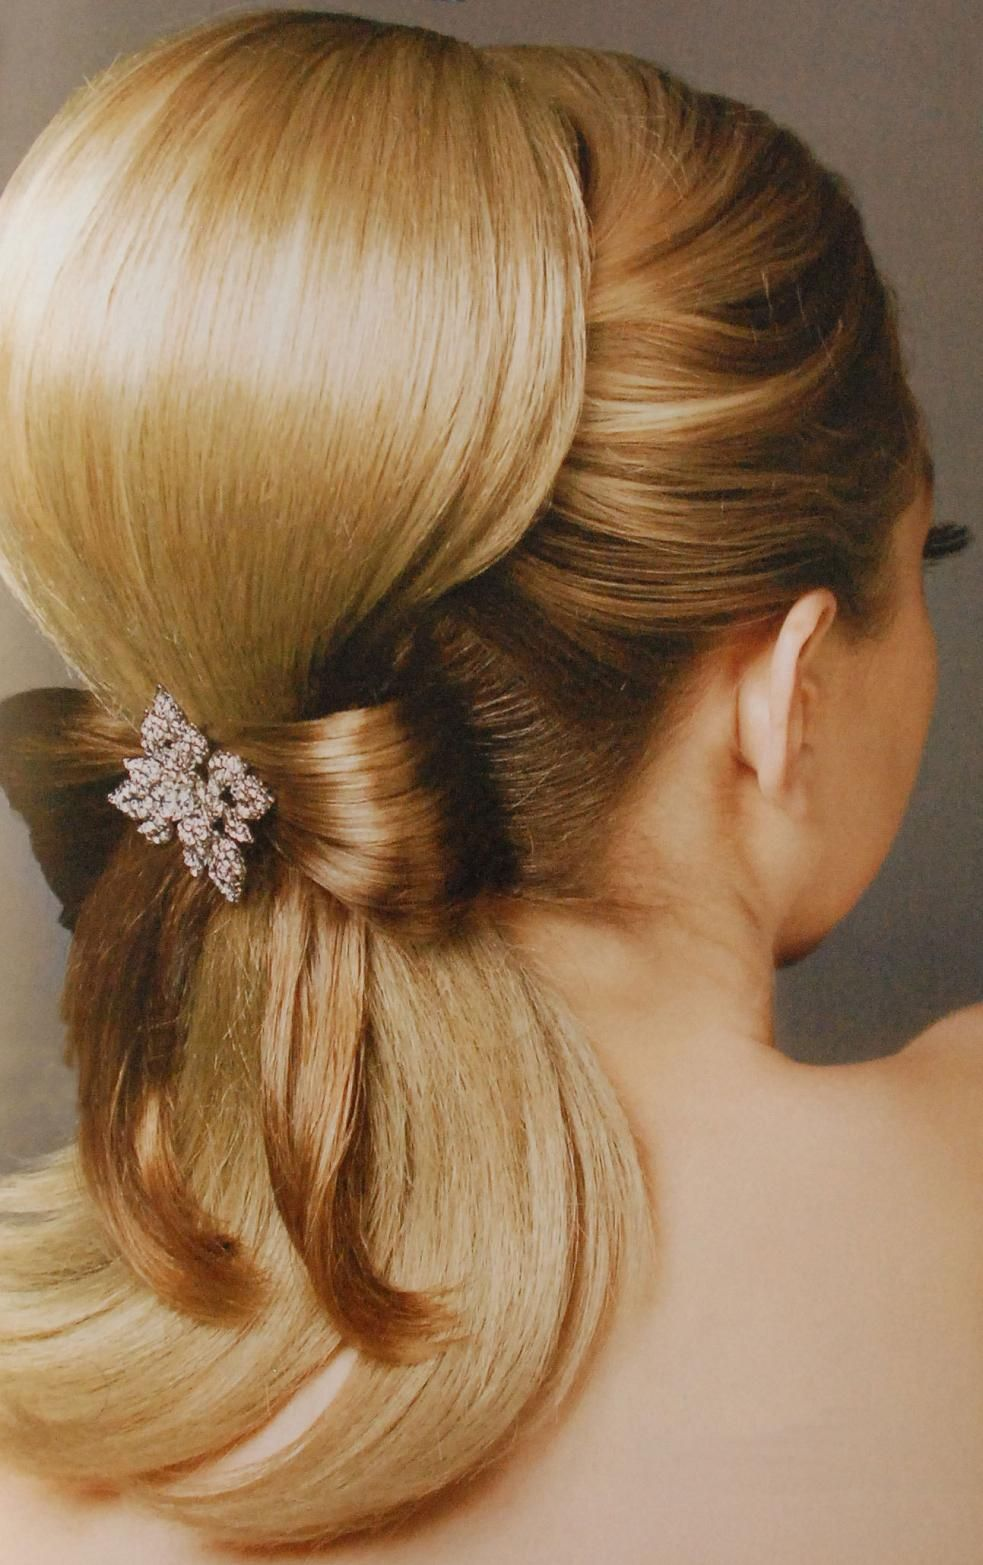 Hairstyles with accessories vip hairstyles beauty pinterest